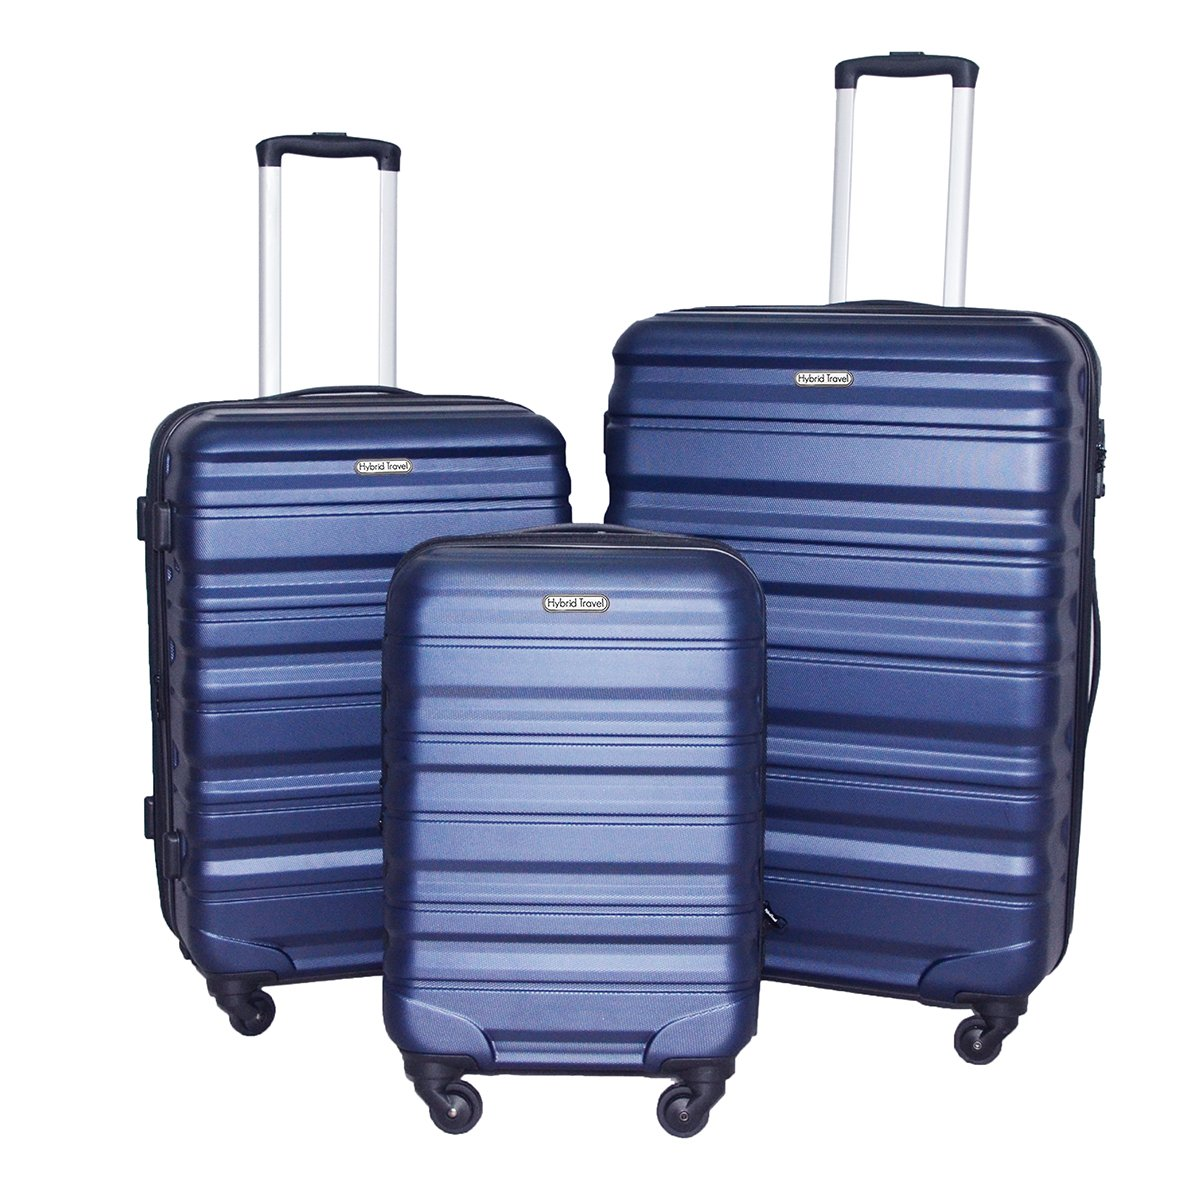 196c51d8c0f3 HyBrid & Company Luggage Set Durable Lightweight Hard Case Spinner Suitcase  LUG3-SS559A, 3 Pieces, Navy